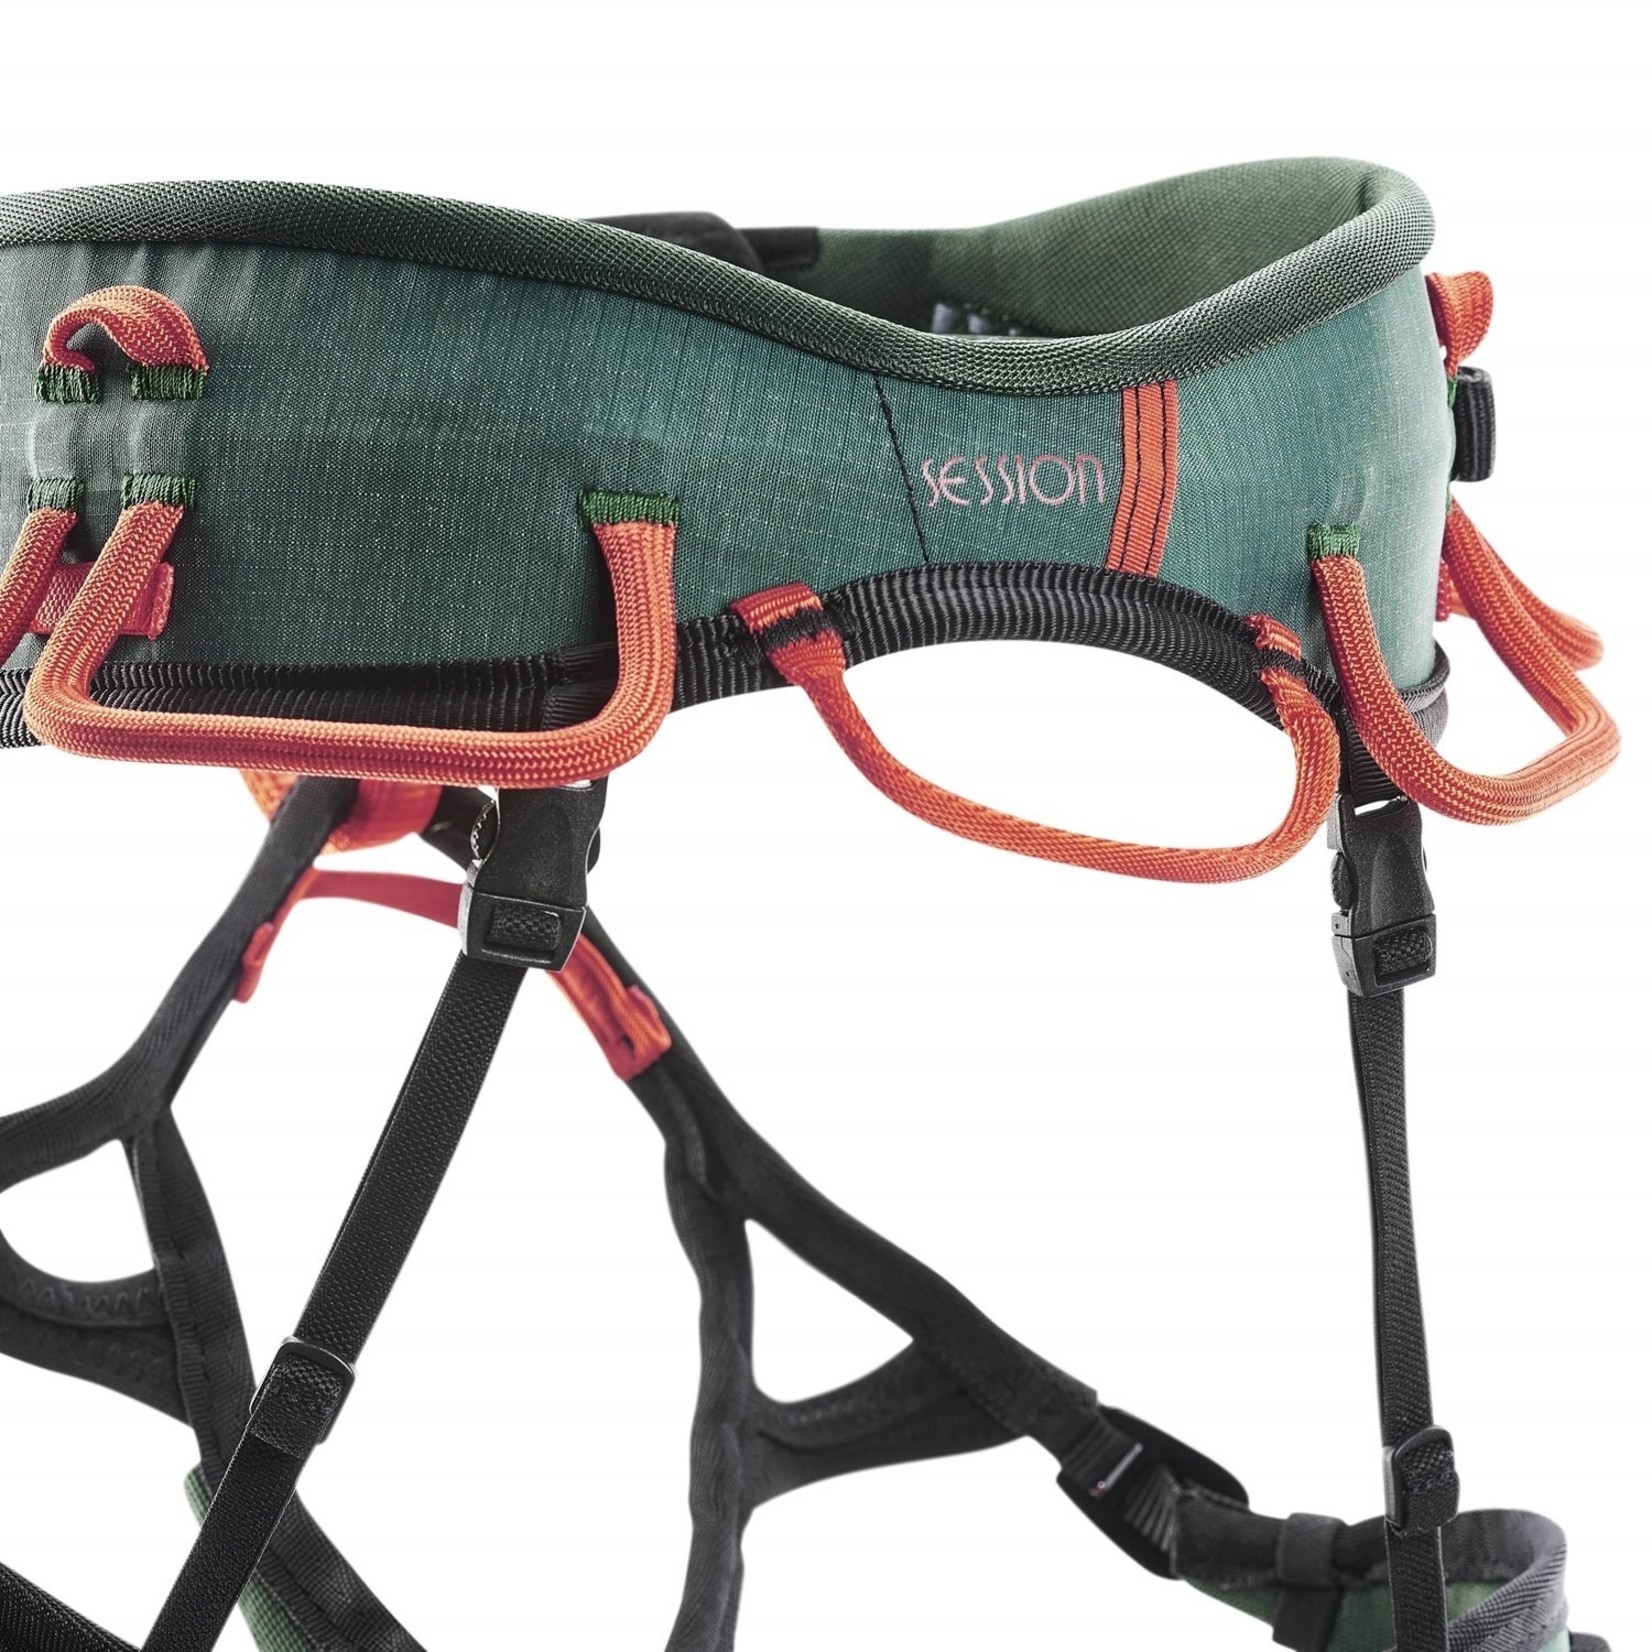 Wild Country Session Harness Men's